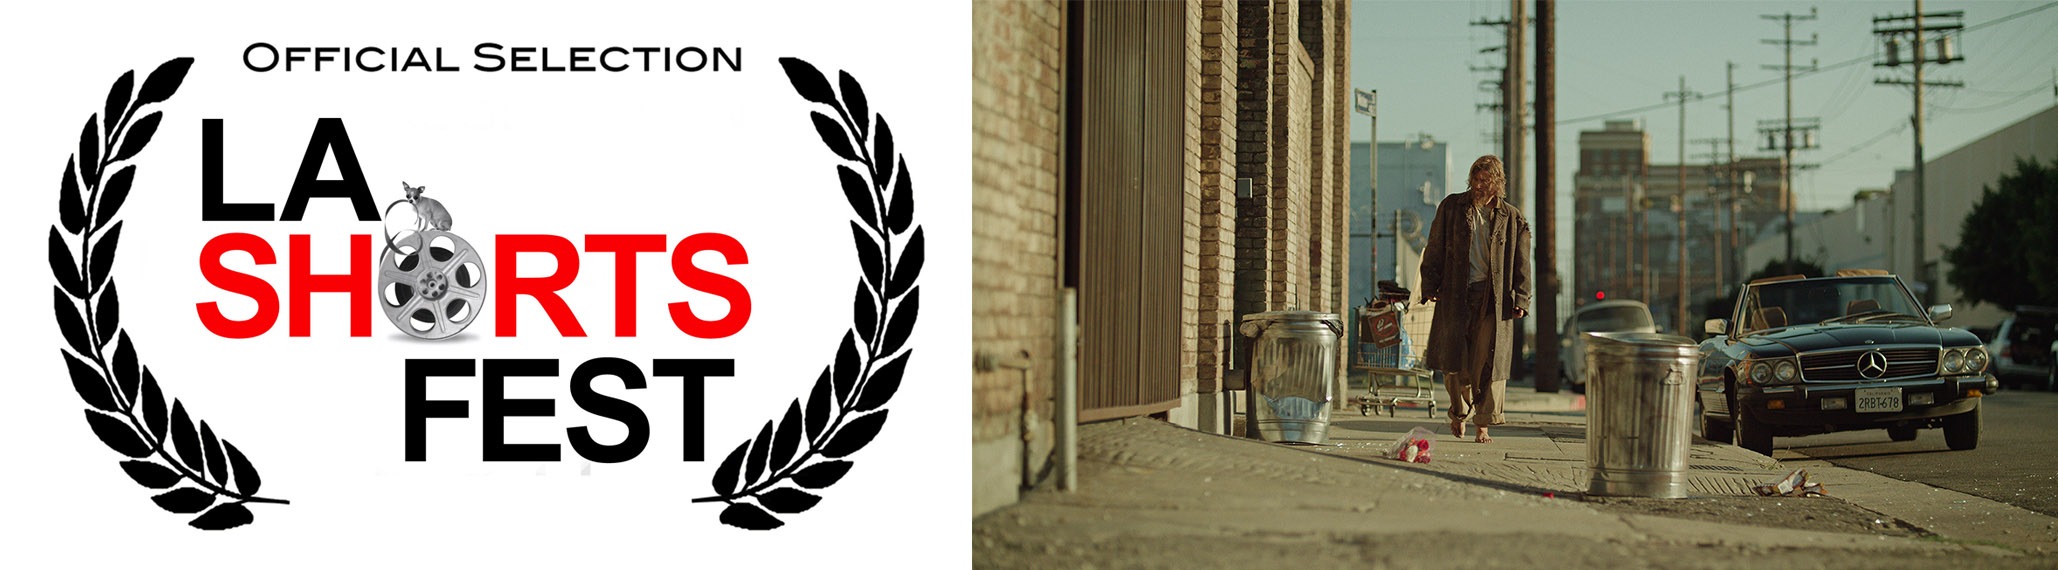 Official-Selection-LA-Shorts-Fest.jpg